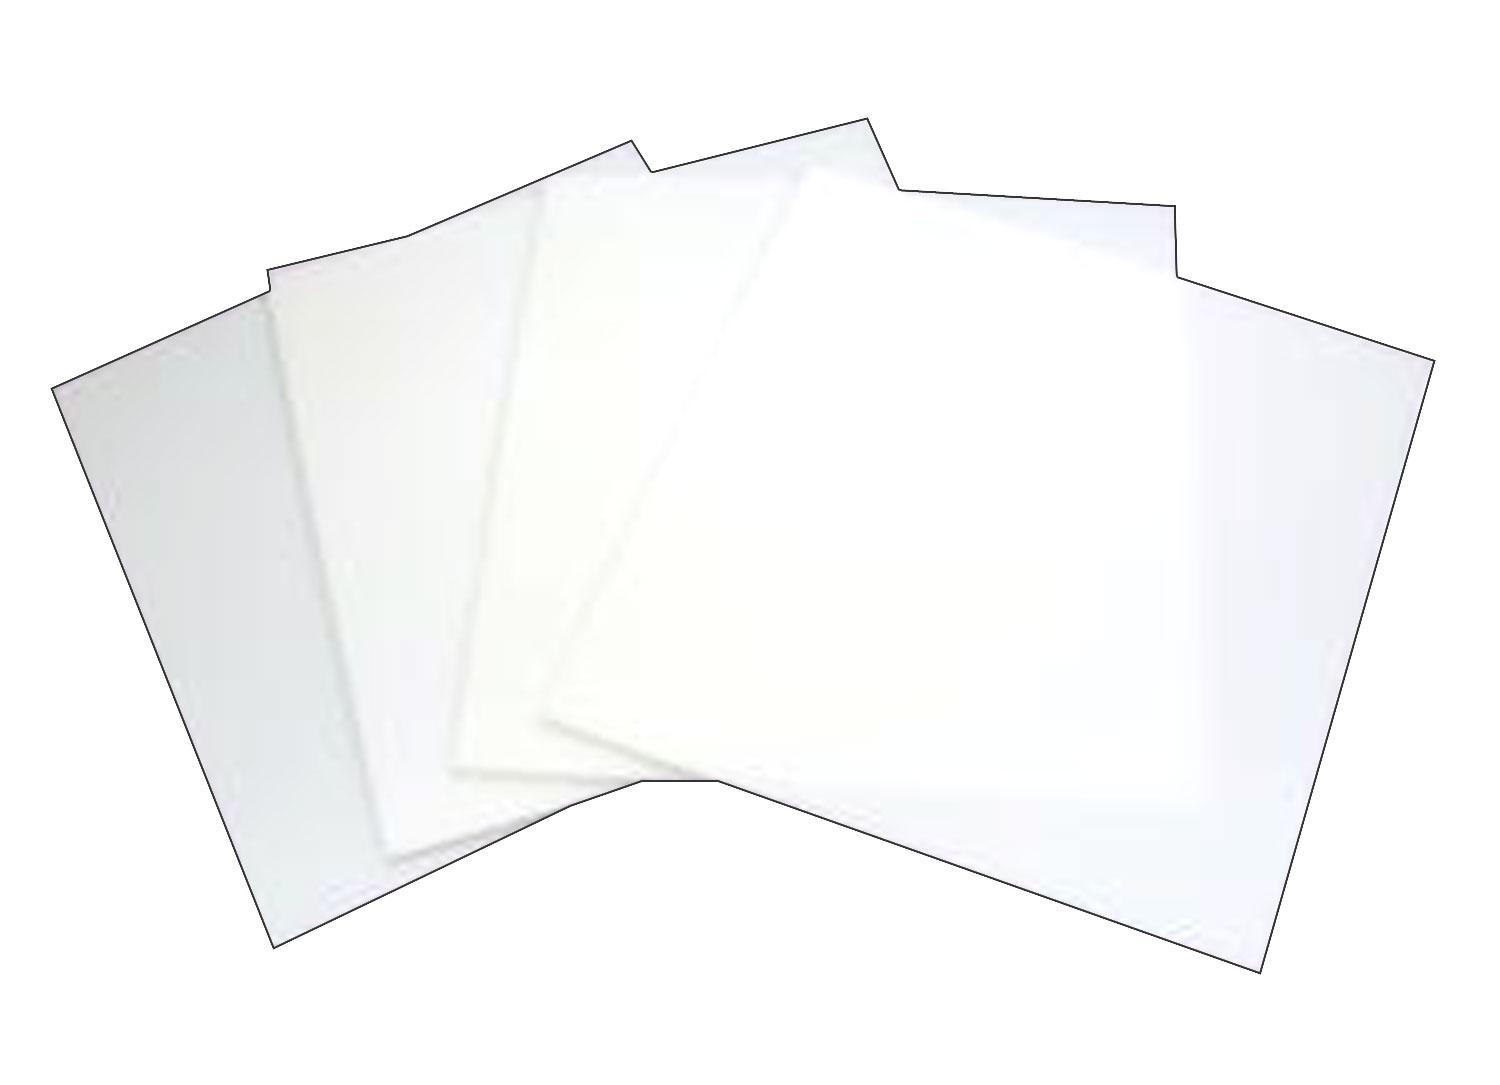 6 White Glass Squares 4 Pack - 90 COE